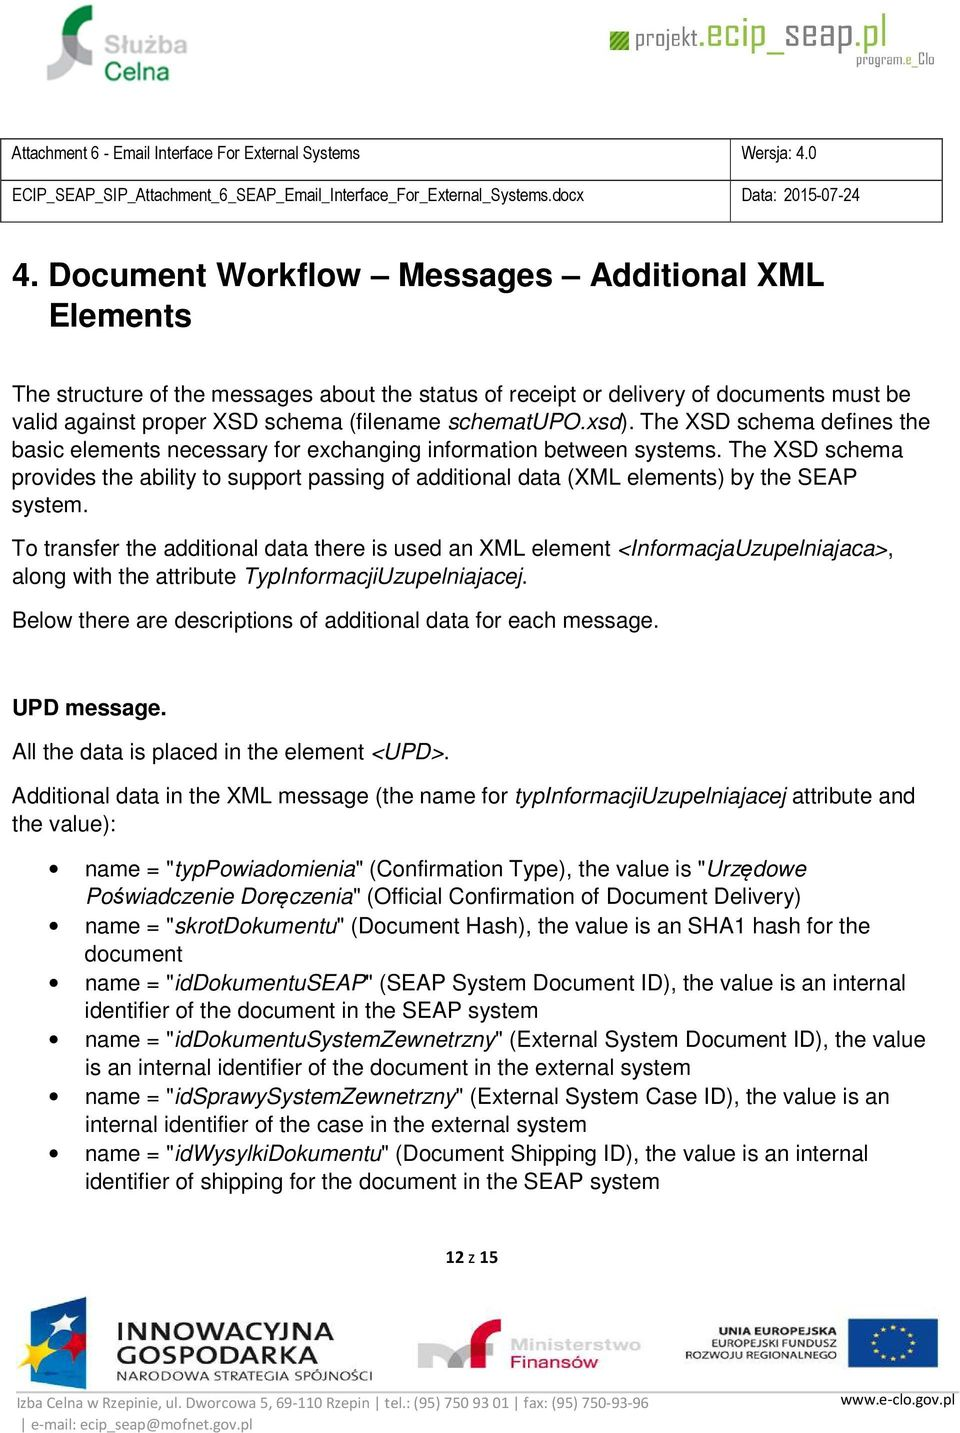 The XSD schema provides the ability to support passing of additional data (XML elements) by the SEAP system.